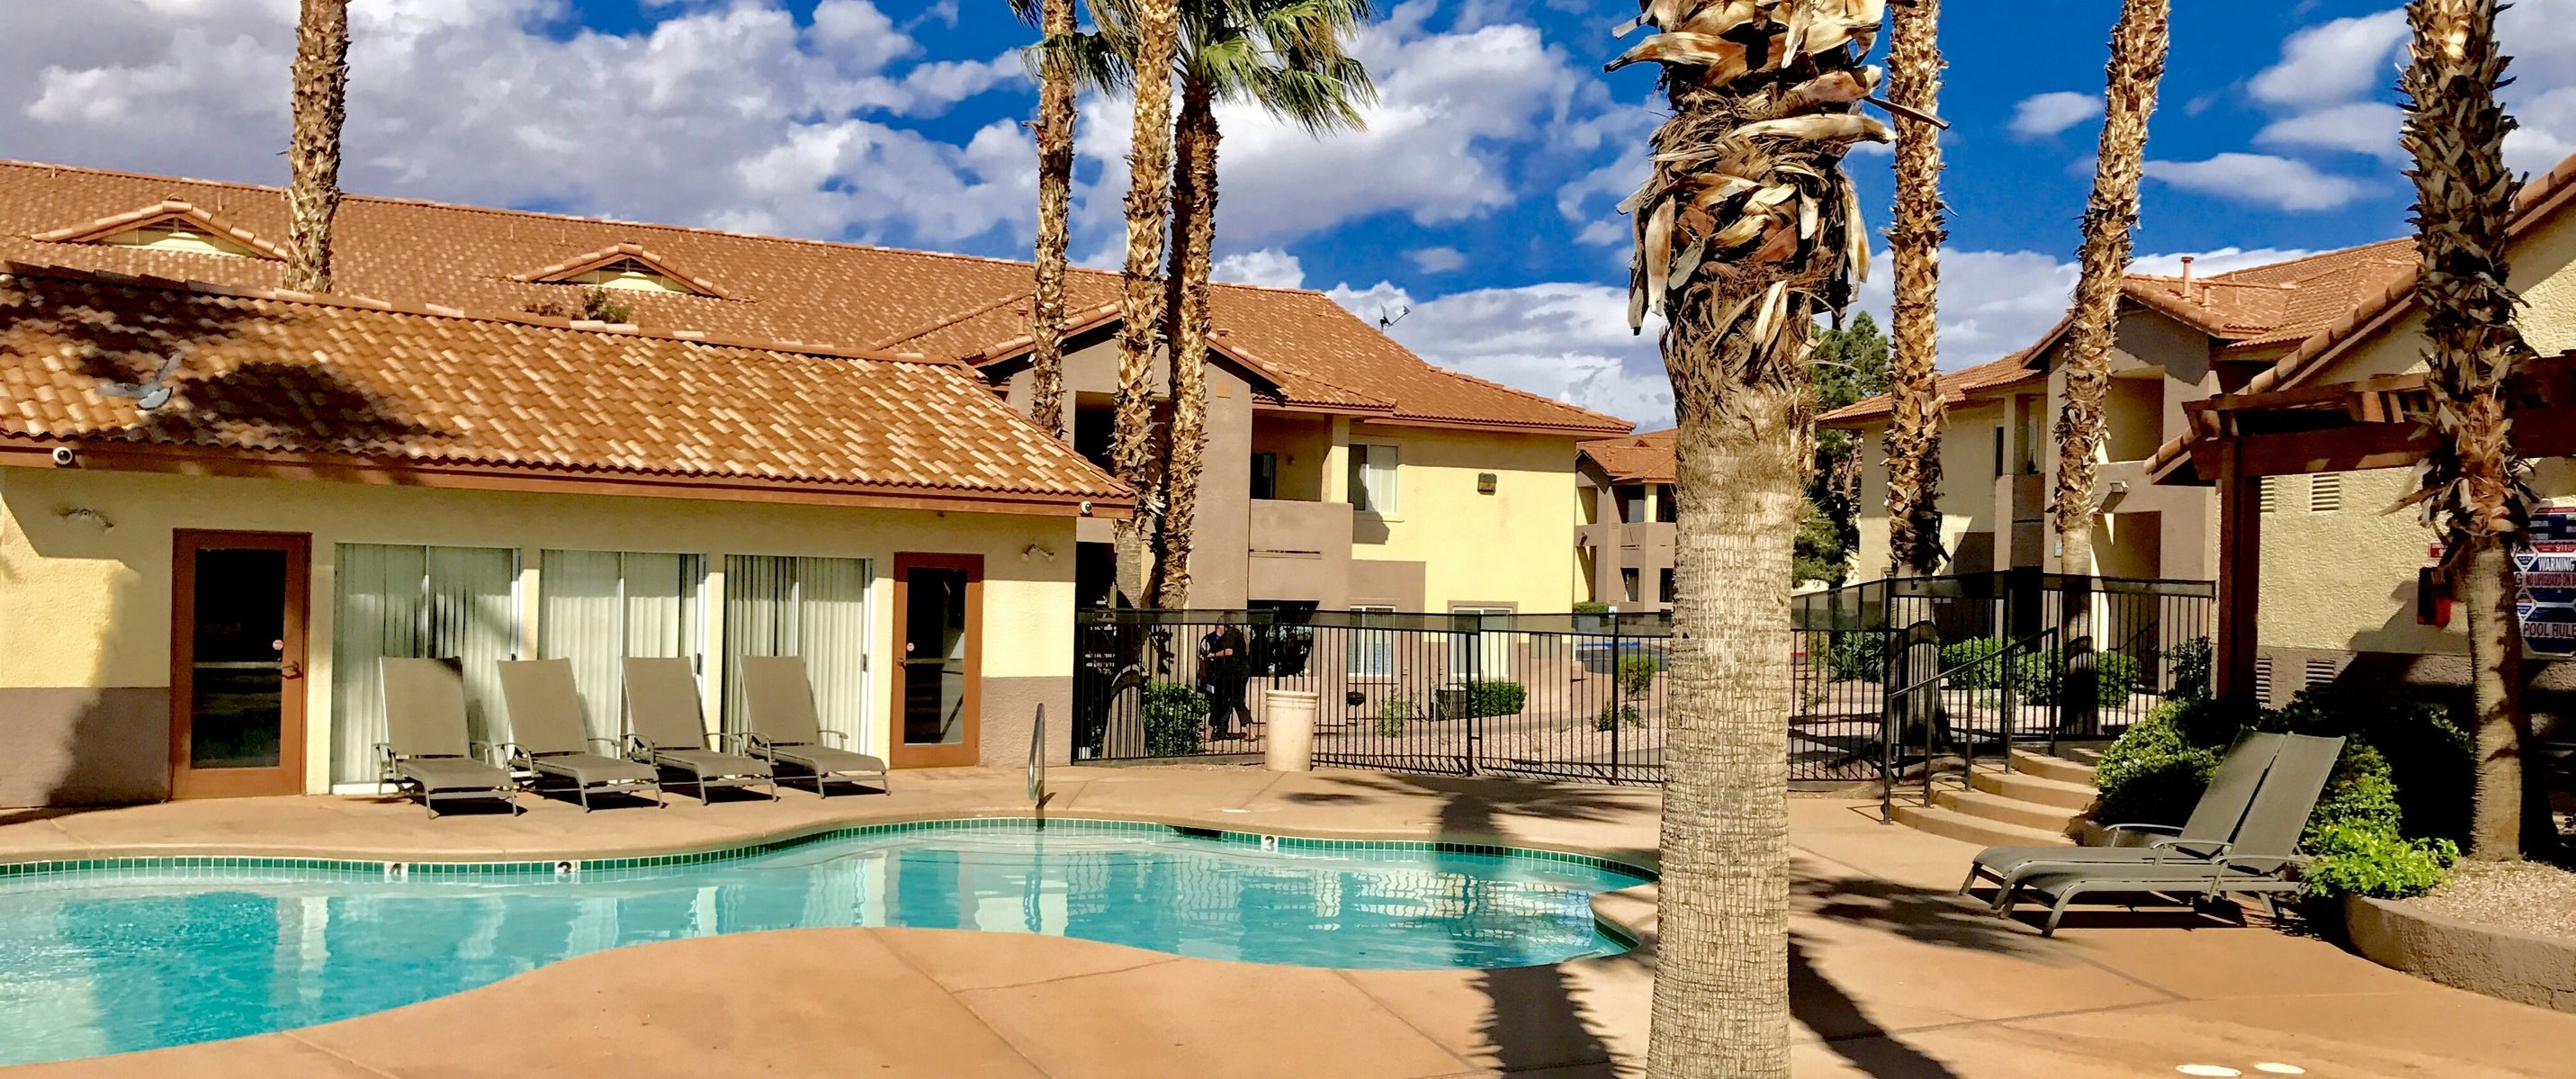 Pool Spa And Lounge Chairs Prelude At The Park Apartments Henderson NV